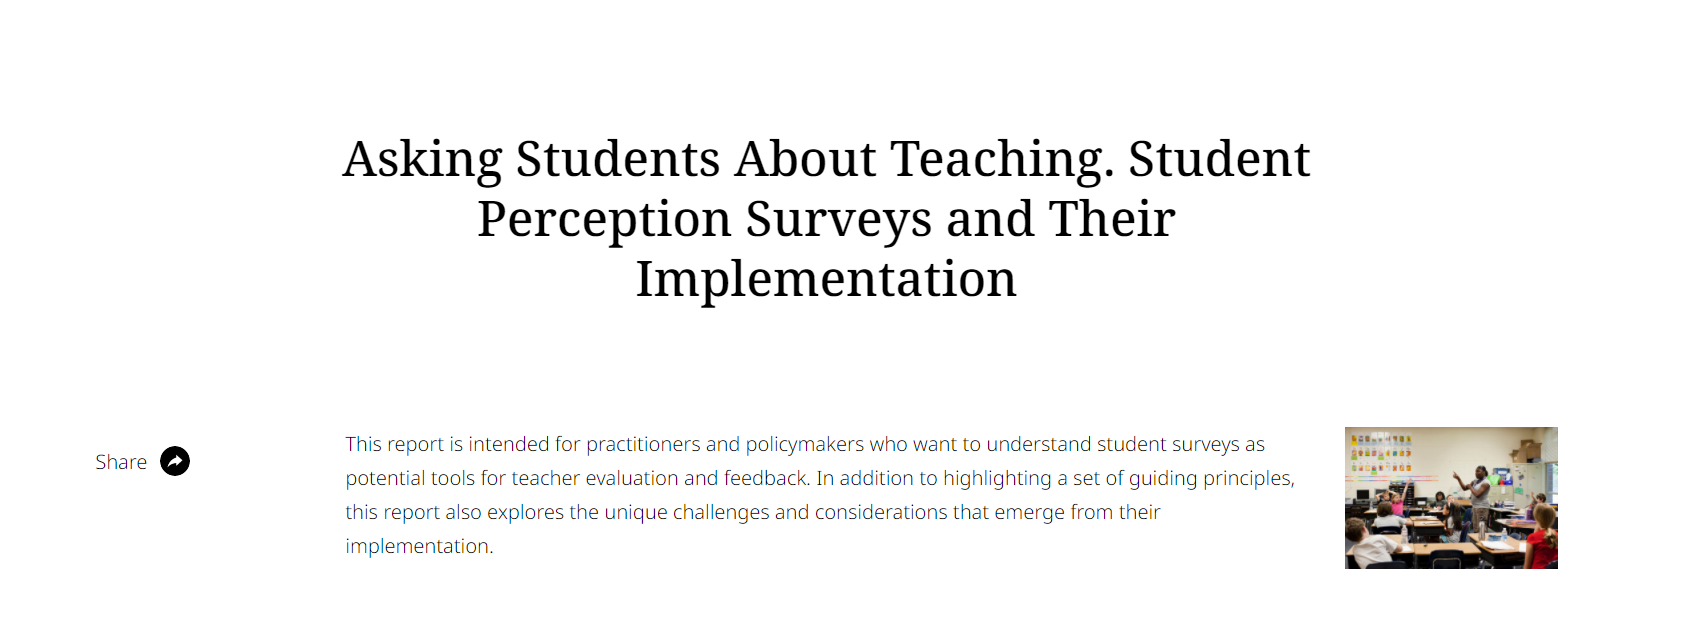 Asking Students About Teaching